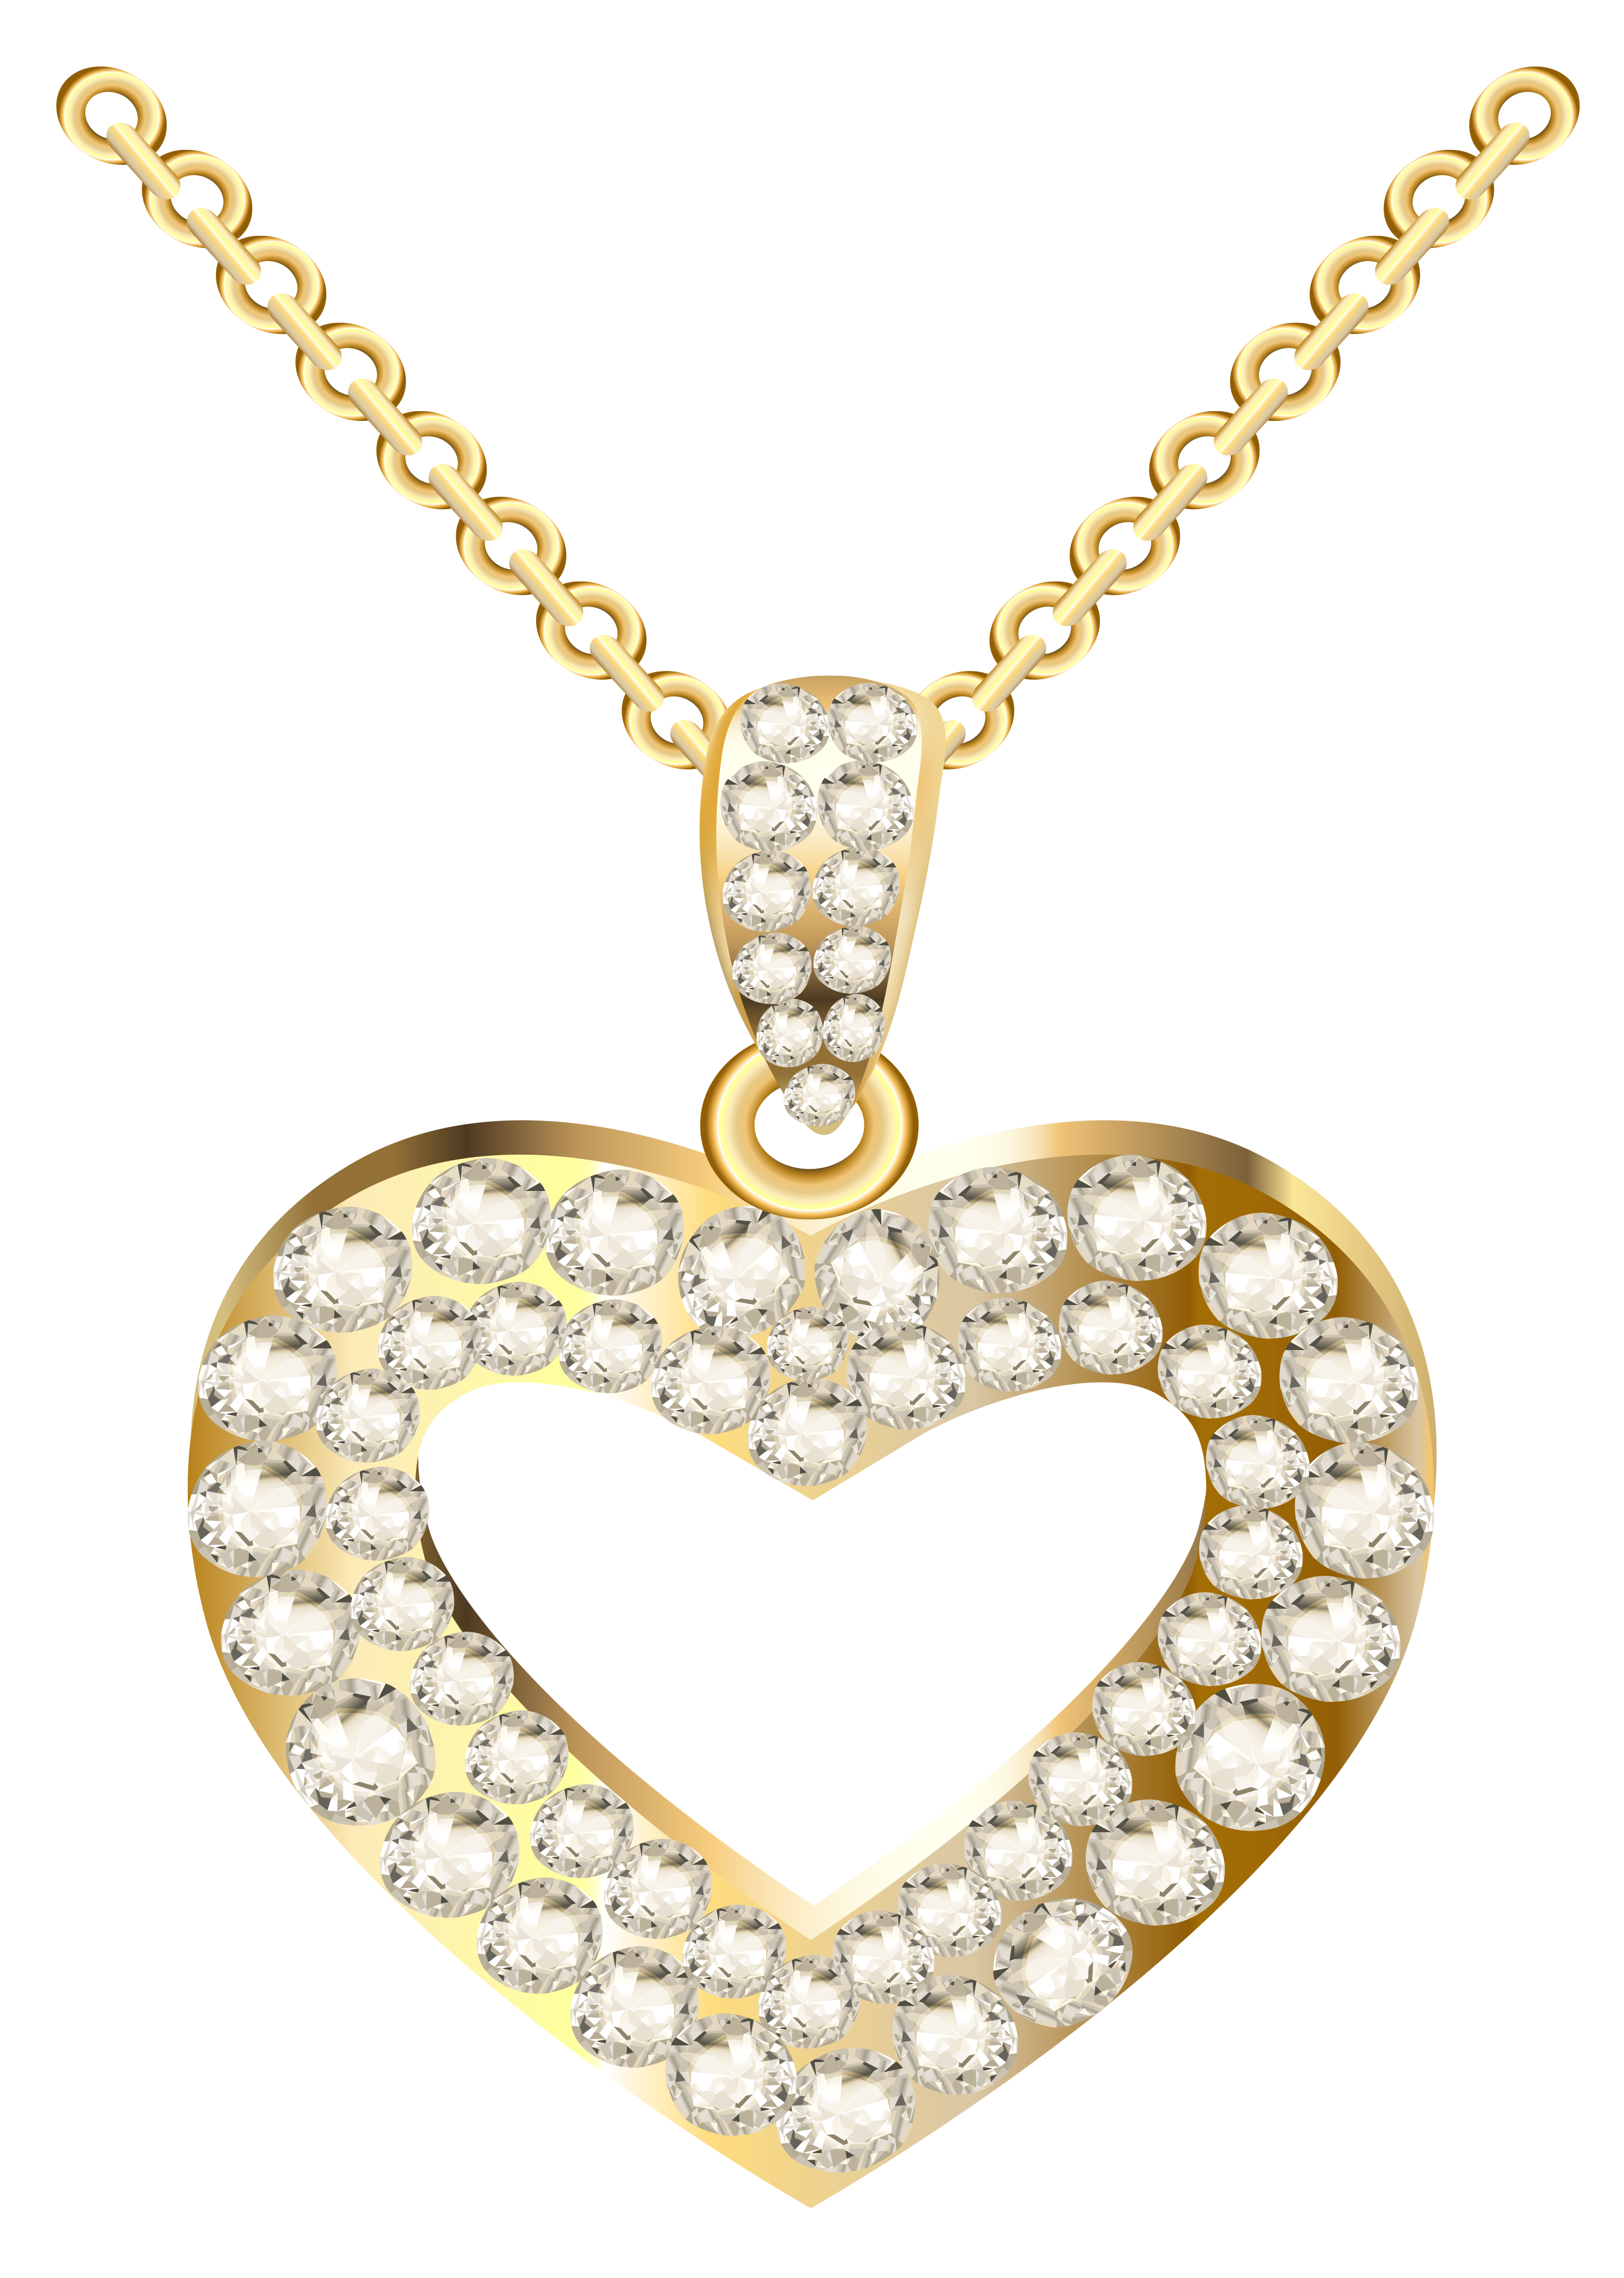 Necklace clipart pendant.  collection of gold